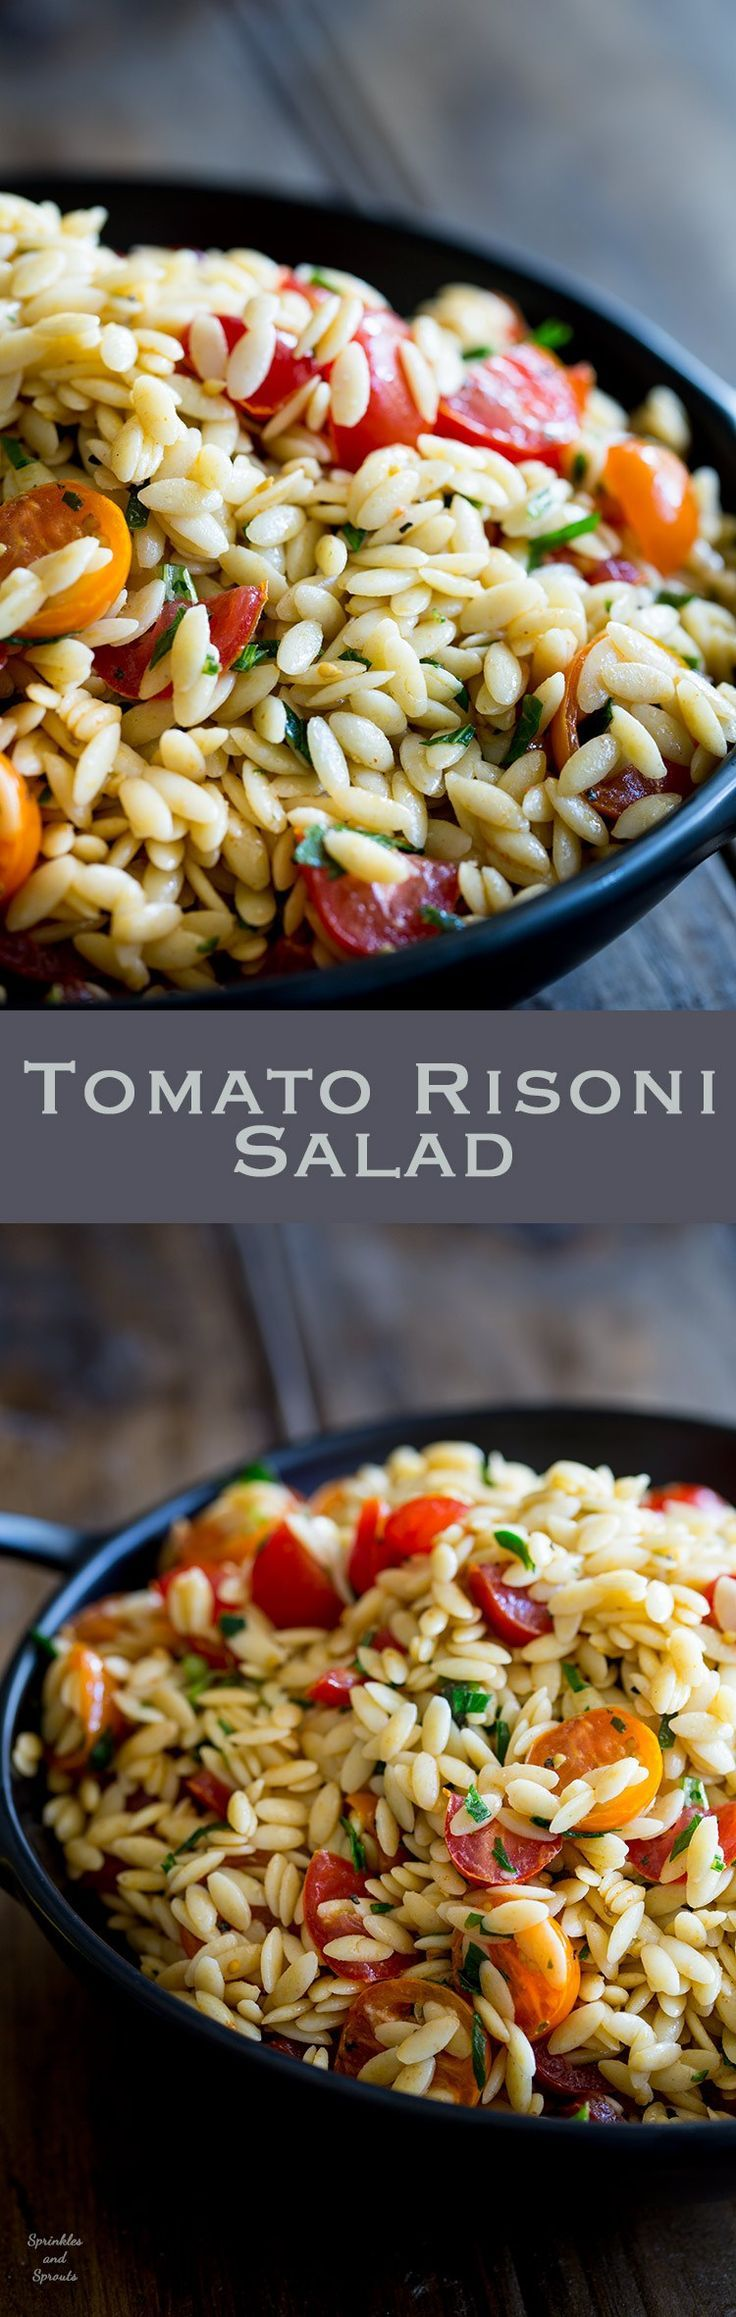 This Tomato Risoni Salad (Tomato Orzo Salad) is a super simple salad that is packed with flavour and works as a side or a main meal. You can add extra veg, meat, cheese what ever you fancy to this salad. It is delicious and perfect for summer or winter!